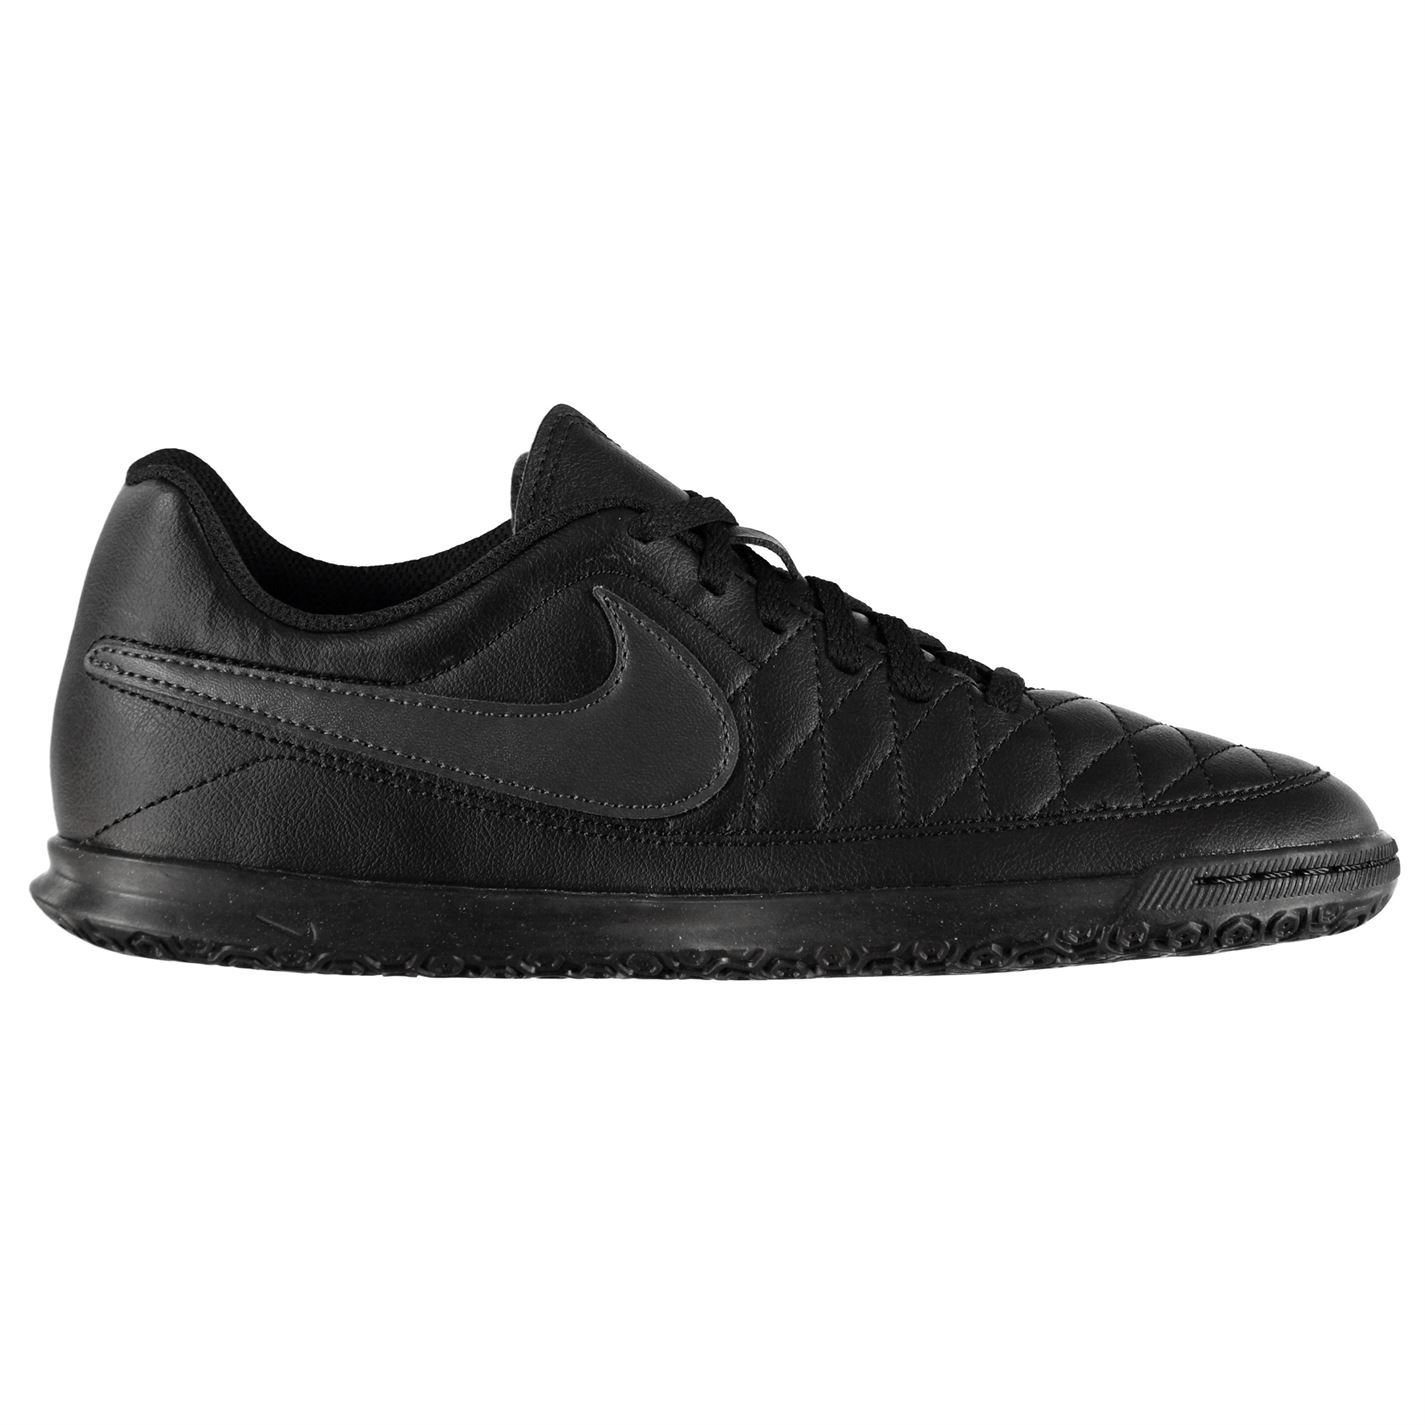 Nike-majestry-Indoor-Football-Baskets-Pour-Homme-Football-Futsal-Chaussures-Baskets-Bottes miniature 10